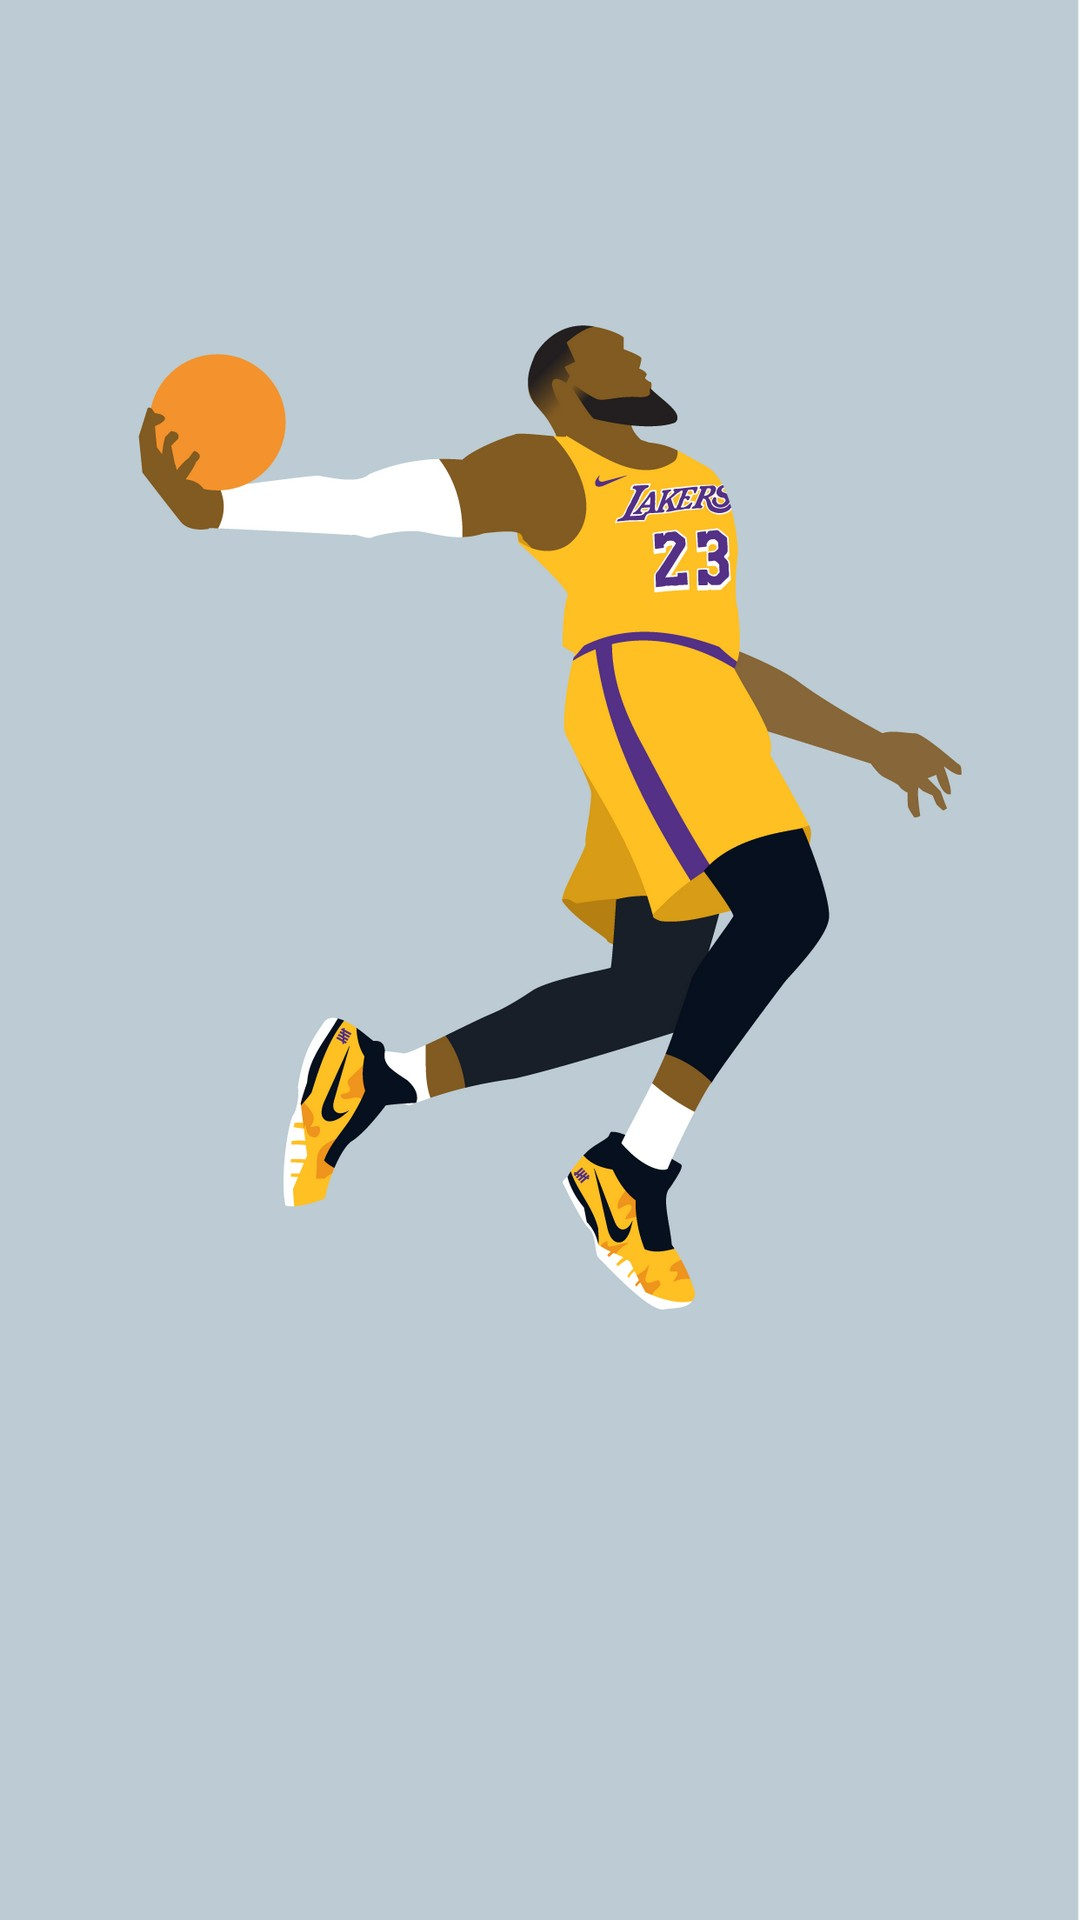 Lebron James Lakers Jersey Wallpaper - Fresh Wallpapers